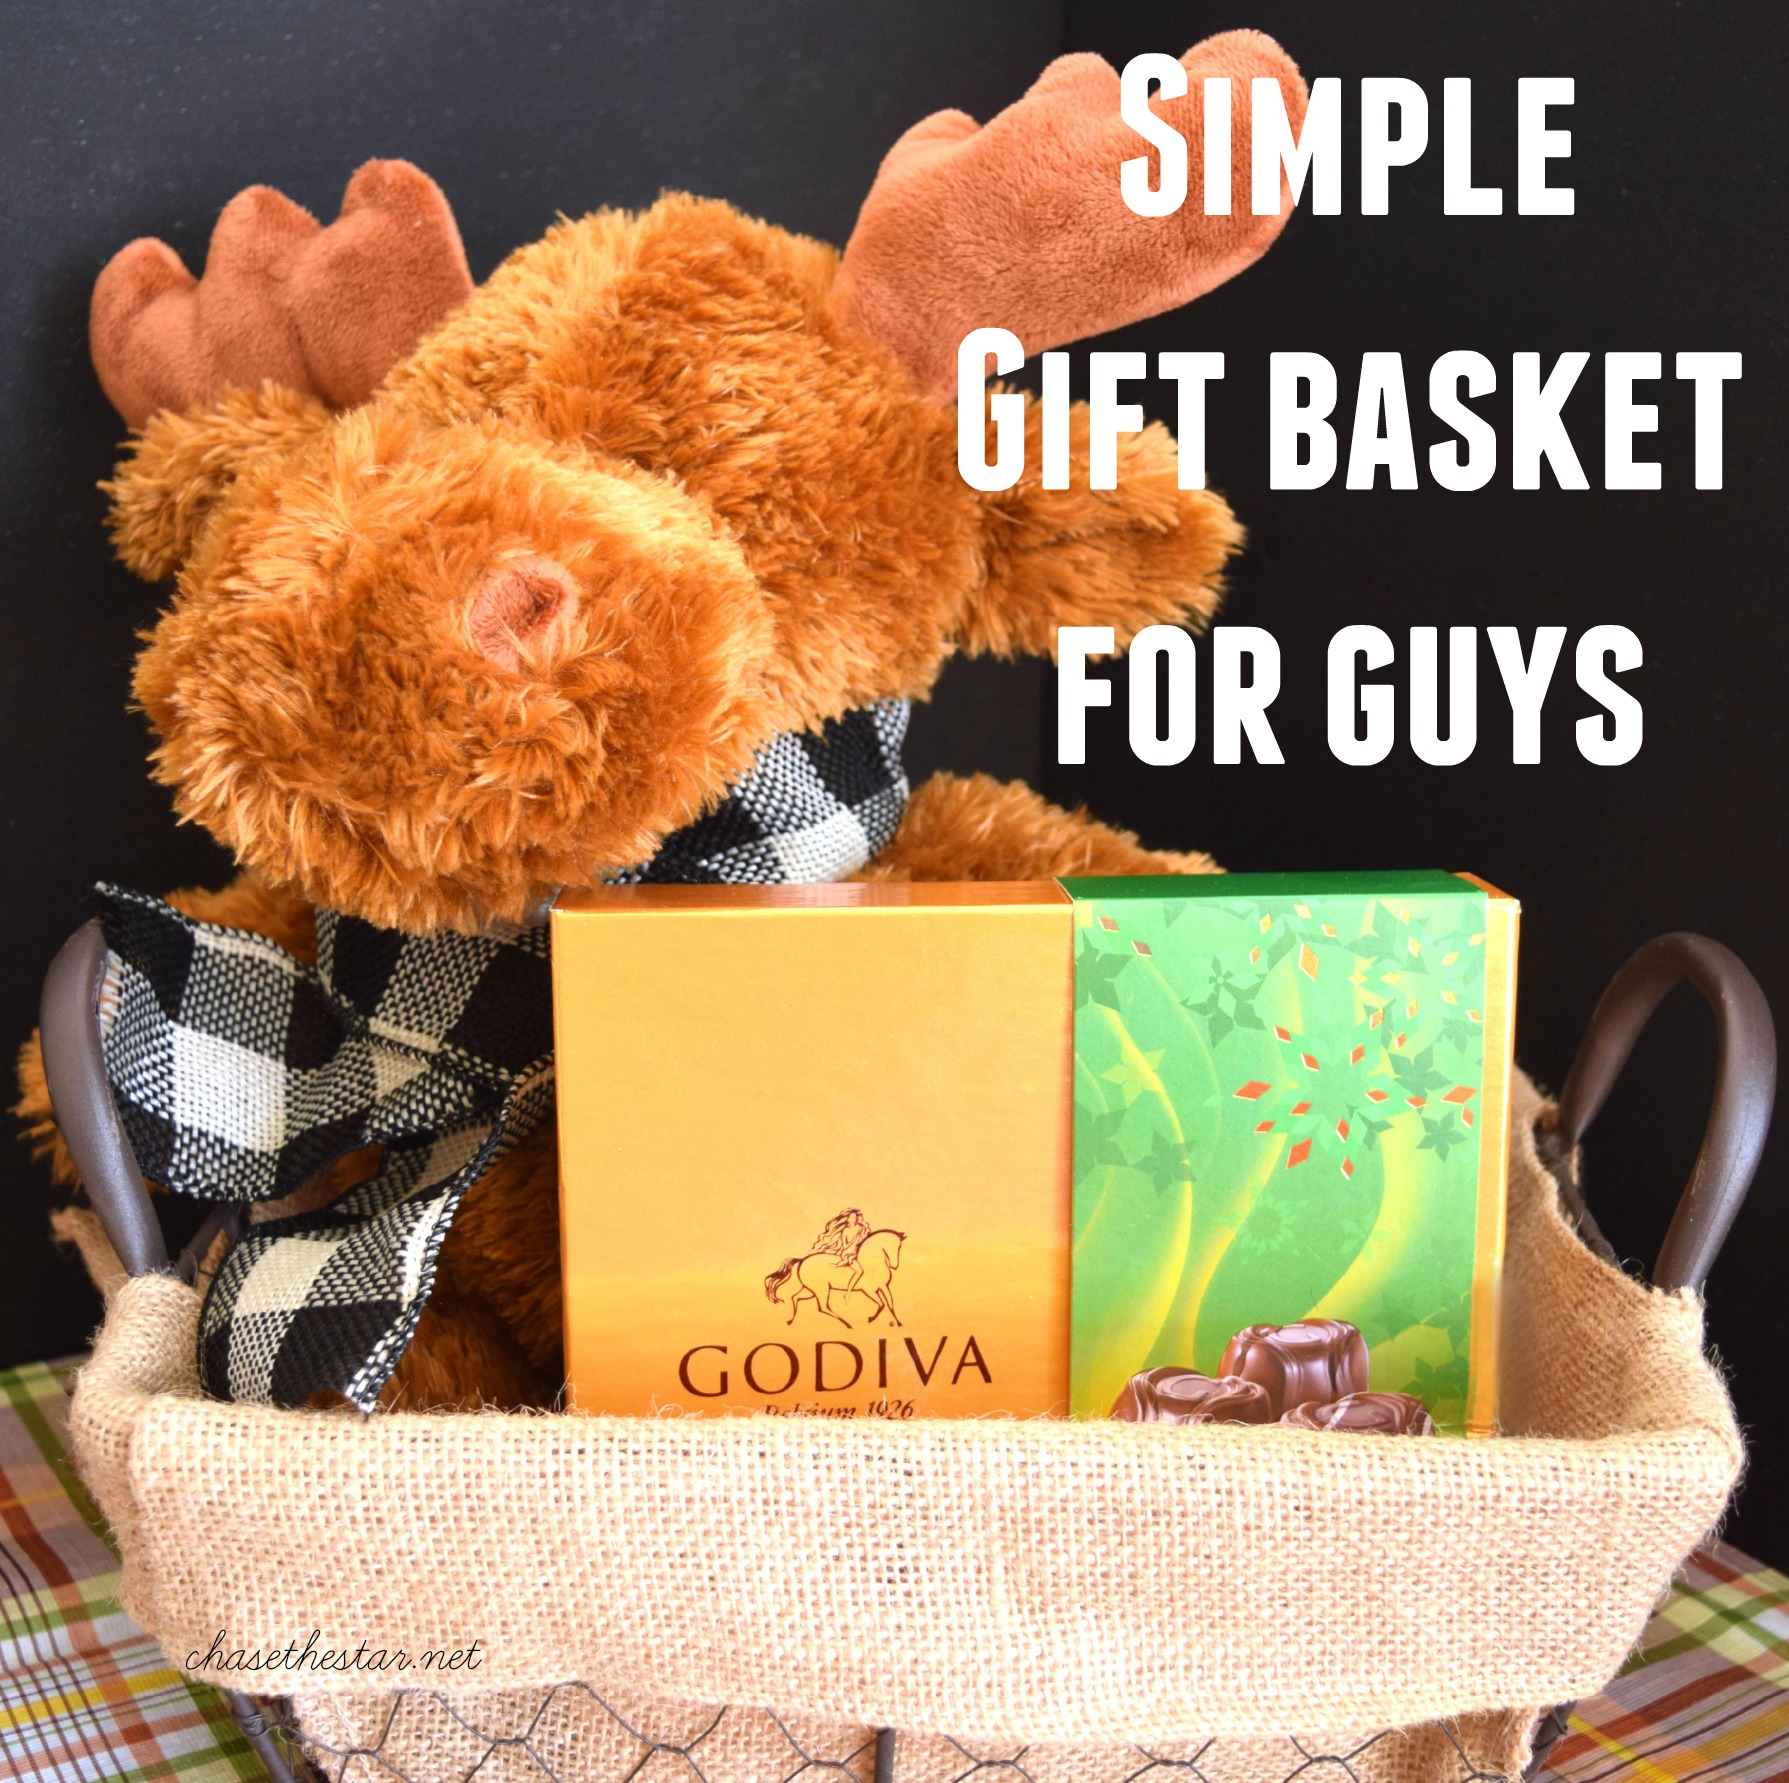 Simple Gift Basket for Guys #giveGODIVA #ad